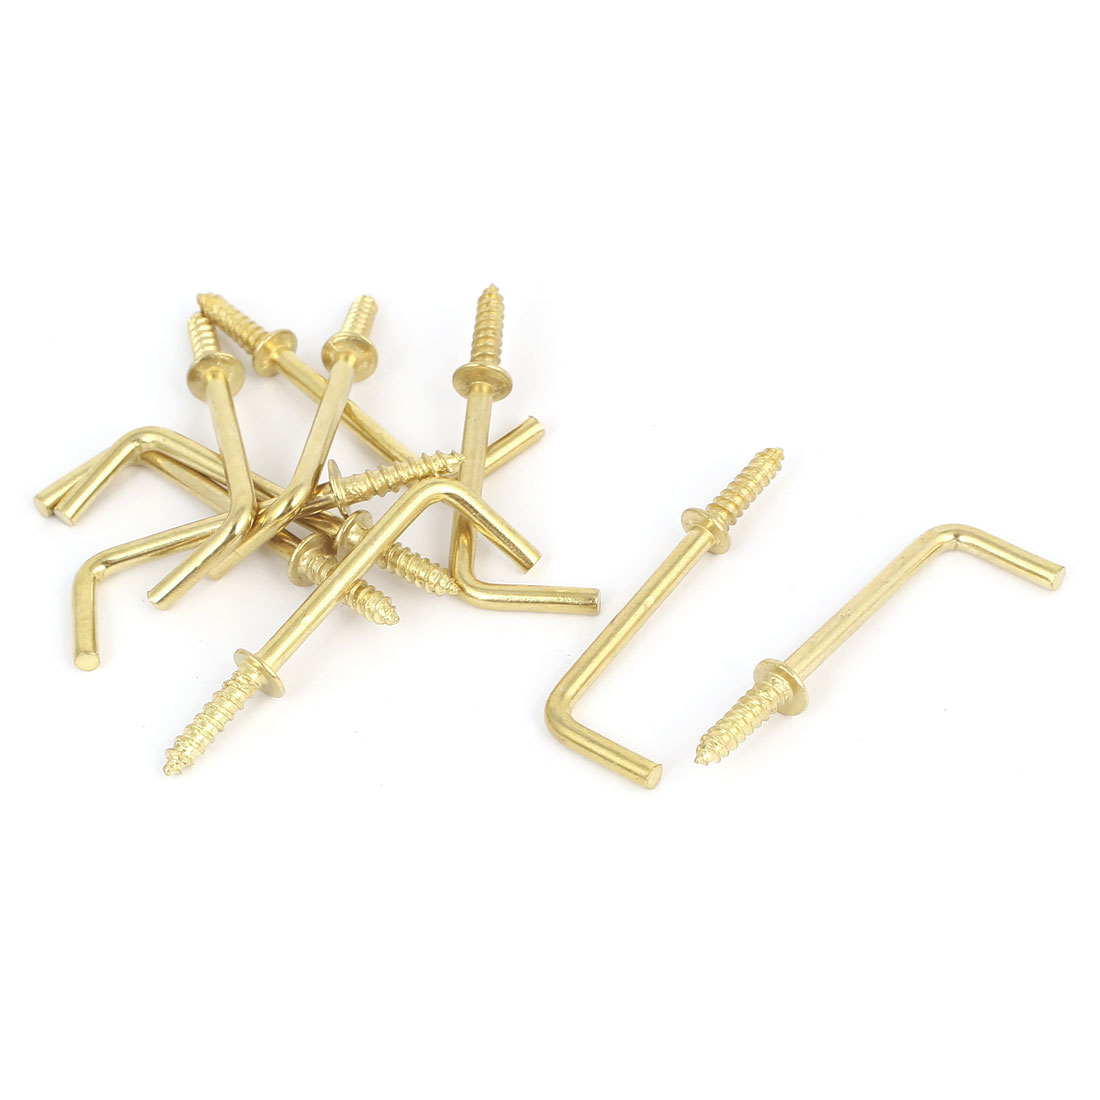 47mm x 16mm x 3mm L Shaped Shoulder Straight Dresser Cup Hook Hanger 10PCS